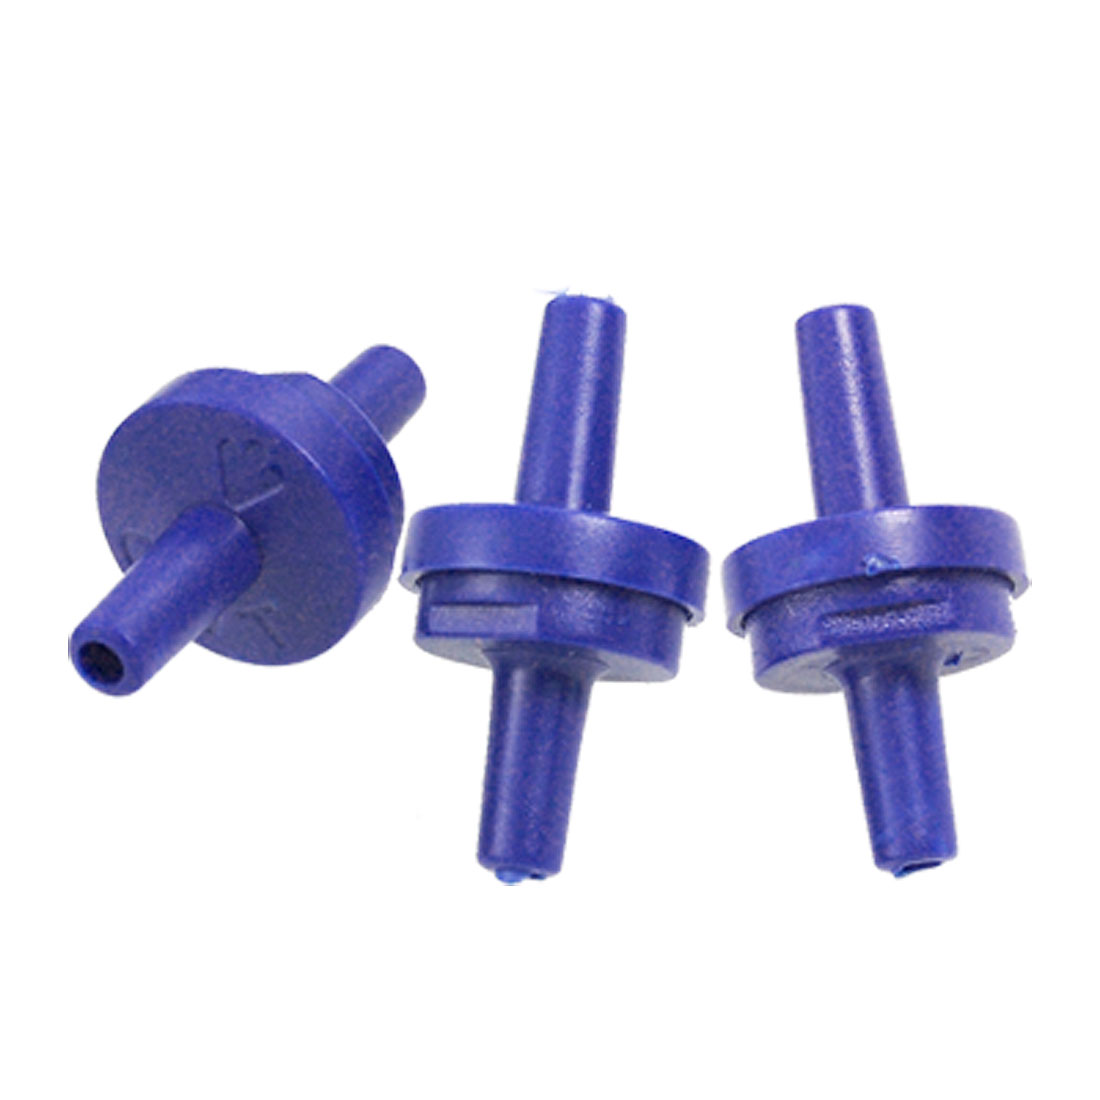 3 Pcs Blue Plastic Air Pump Outlet Check Valves for Aquarium Tank